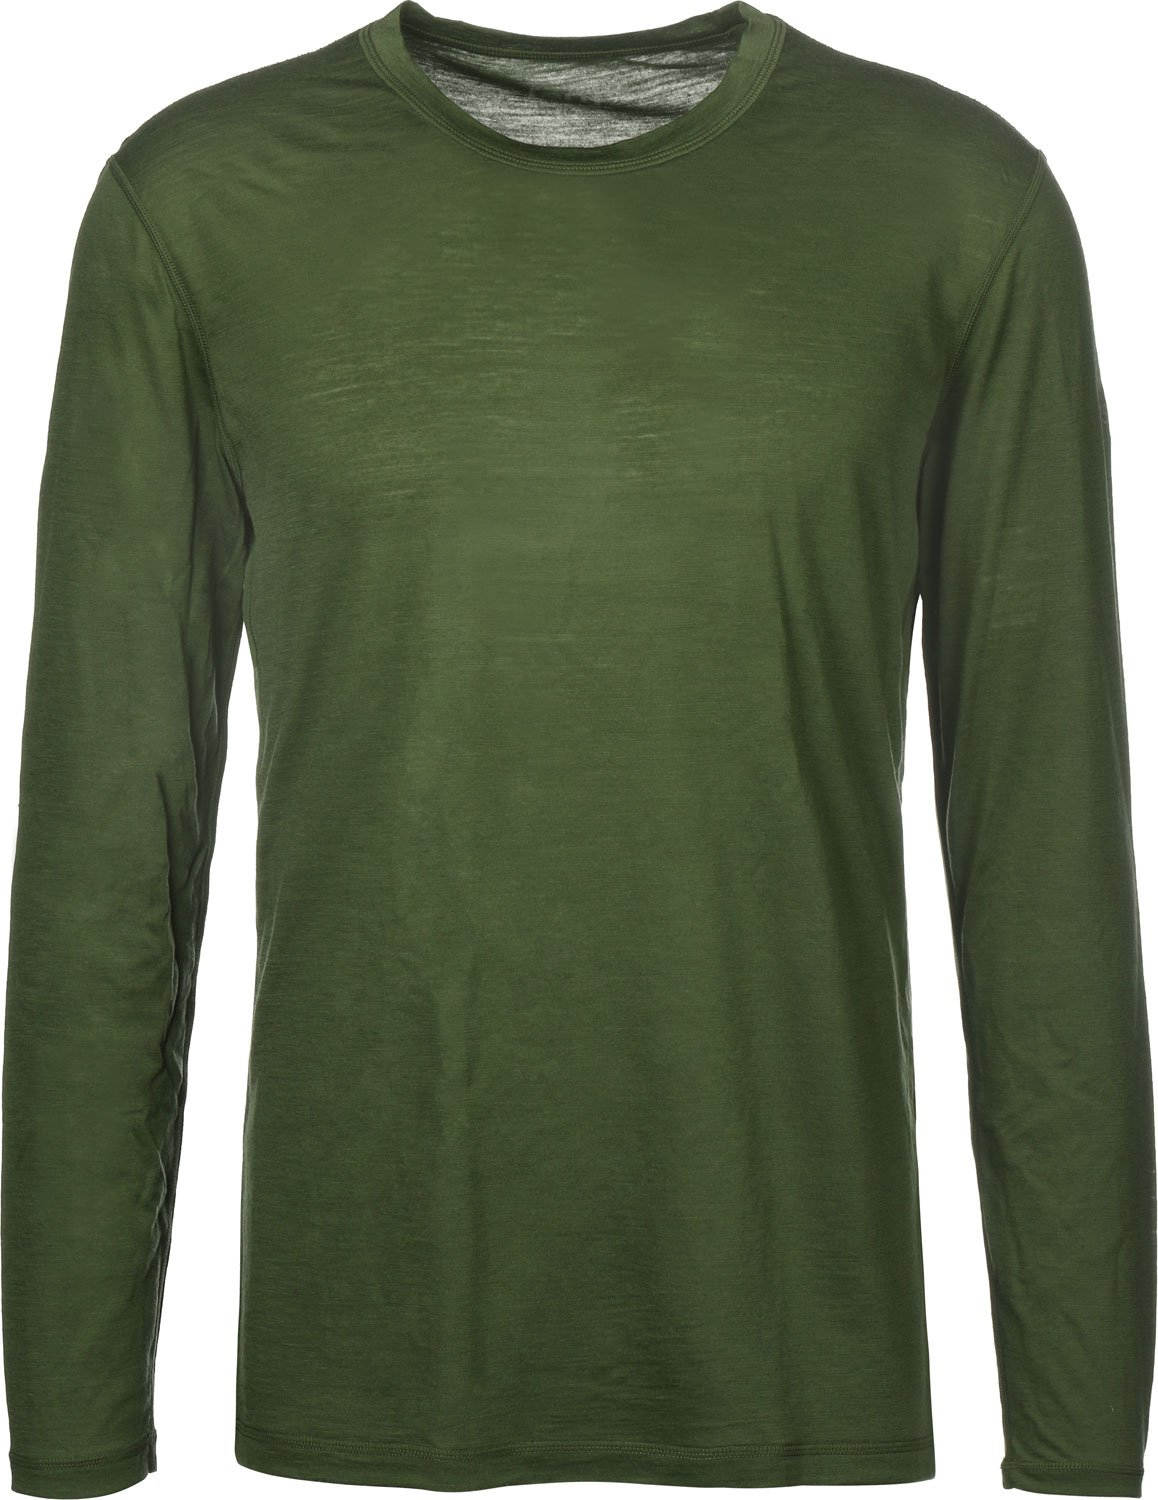 Super Natural M Base LS 140 Thermo-Shirt, Herren